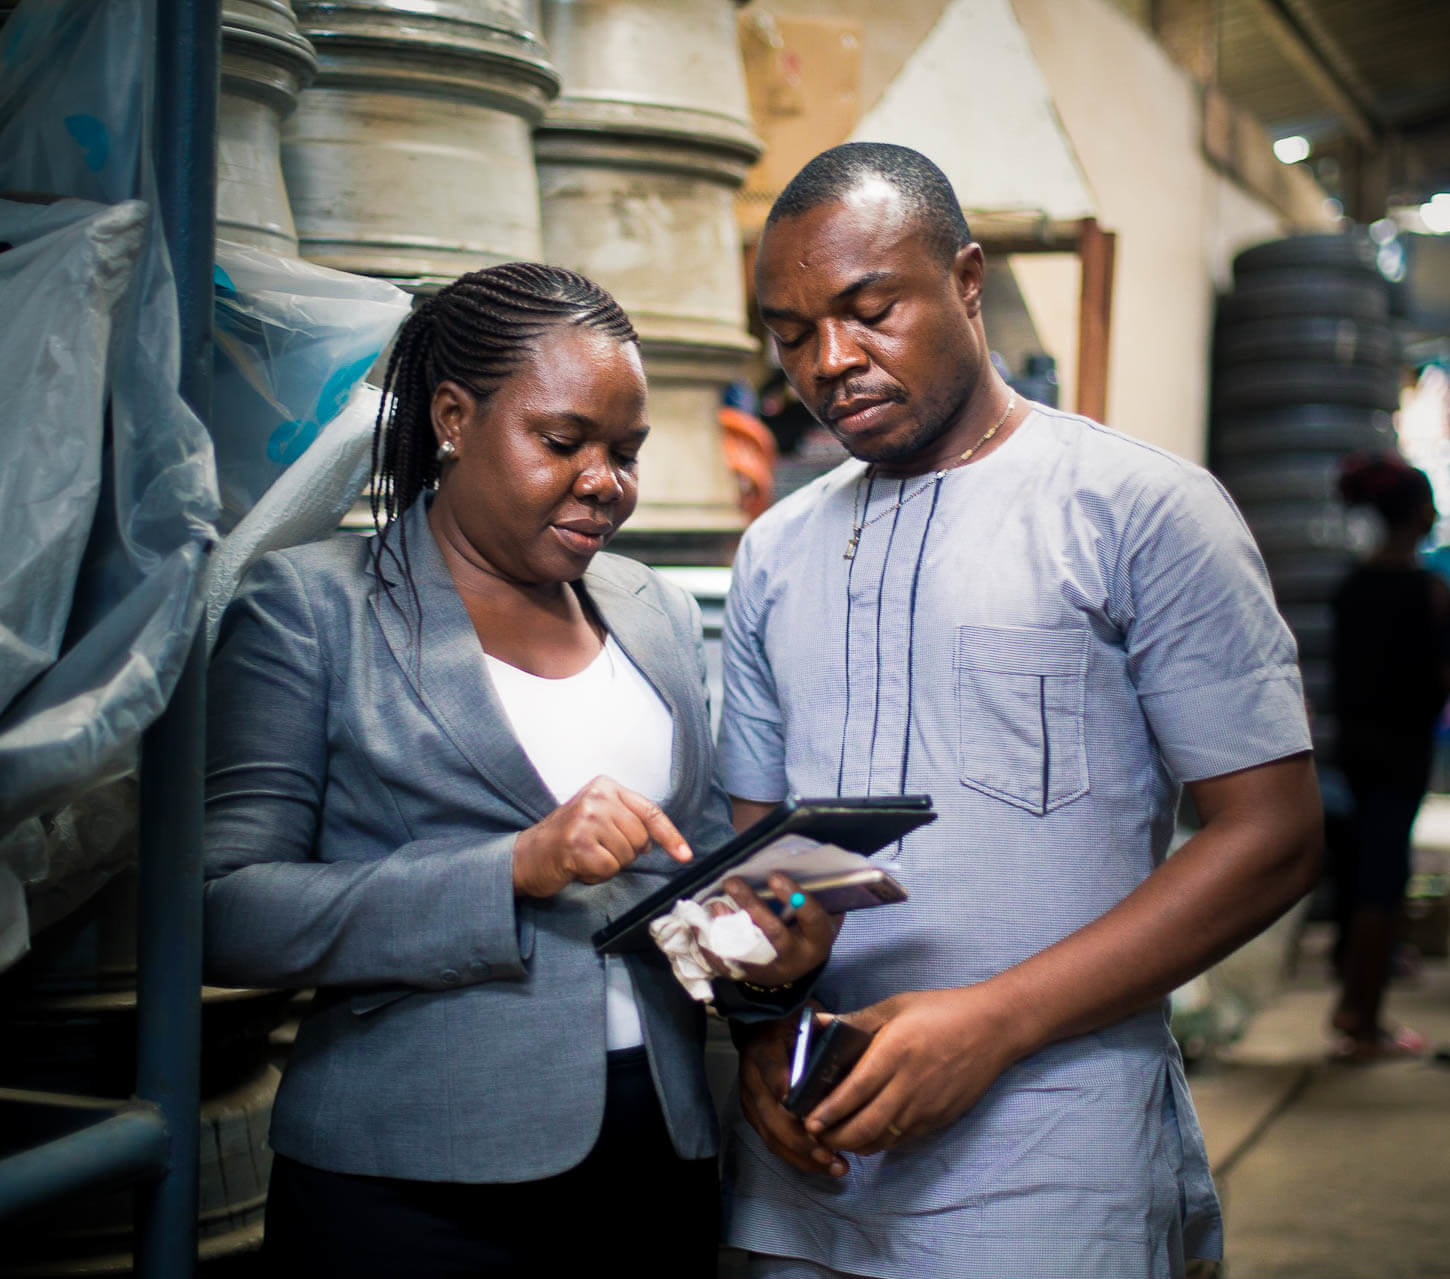 Accion Microfinance Bank loan officer uses a tablet to serve client Ezeh at his workshop